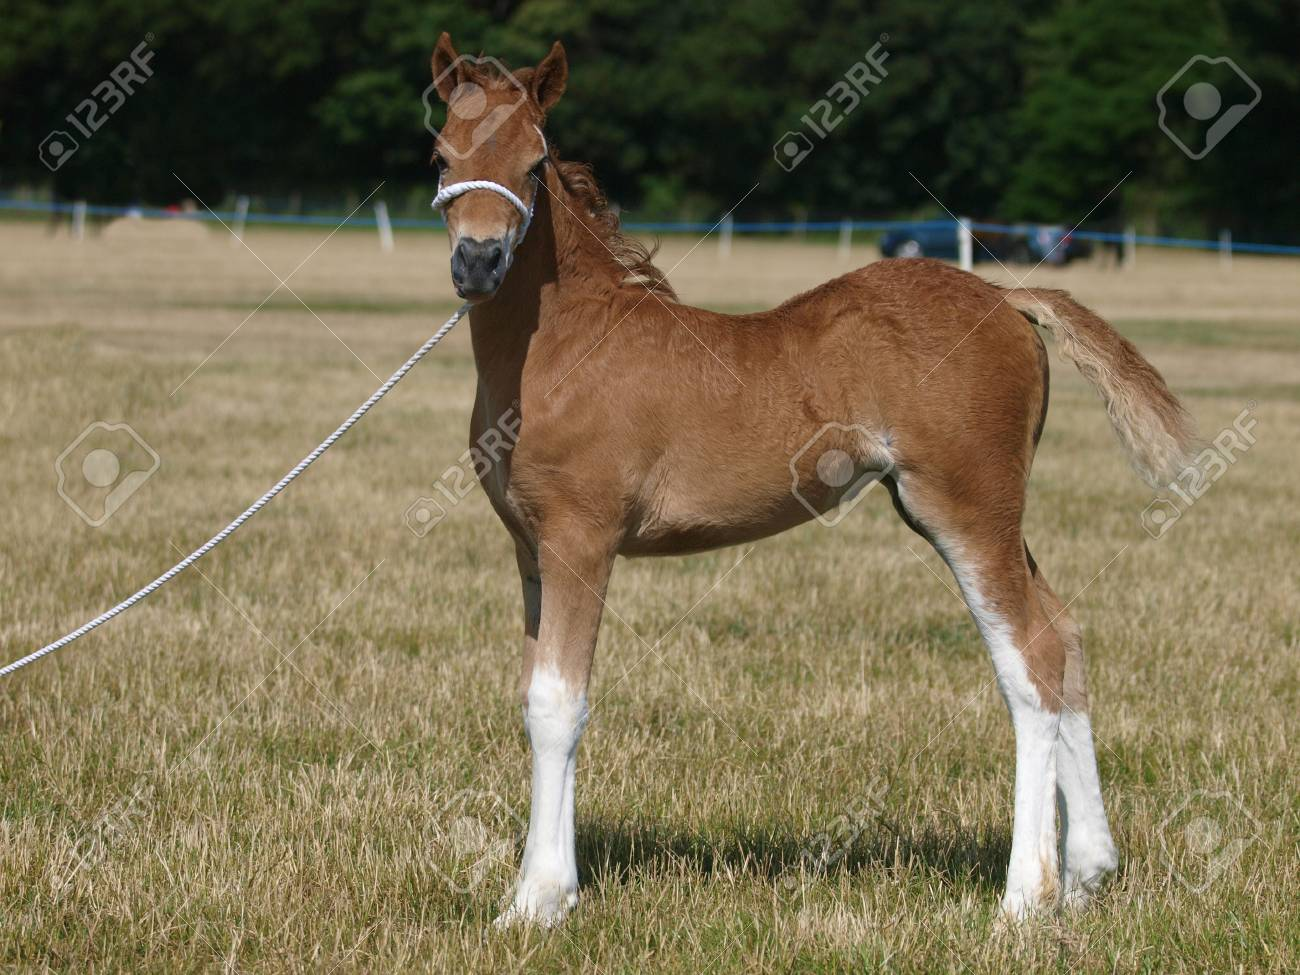 A Cute Welsh Pony Foal In A White Halter Stands At A Show Stock Photo Picture And Royalty Free Image Image 106297629